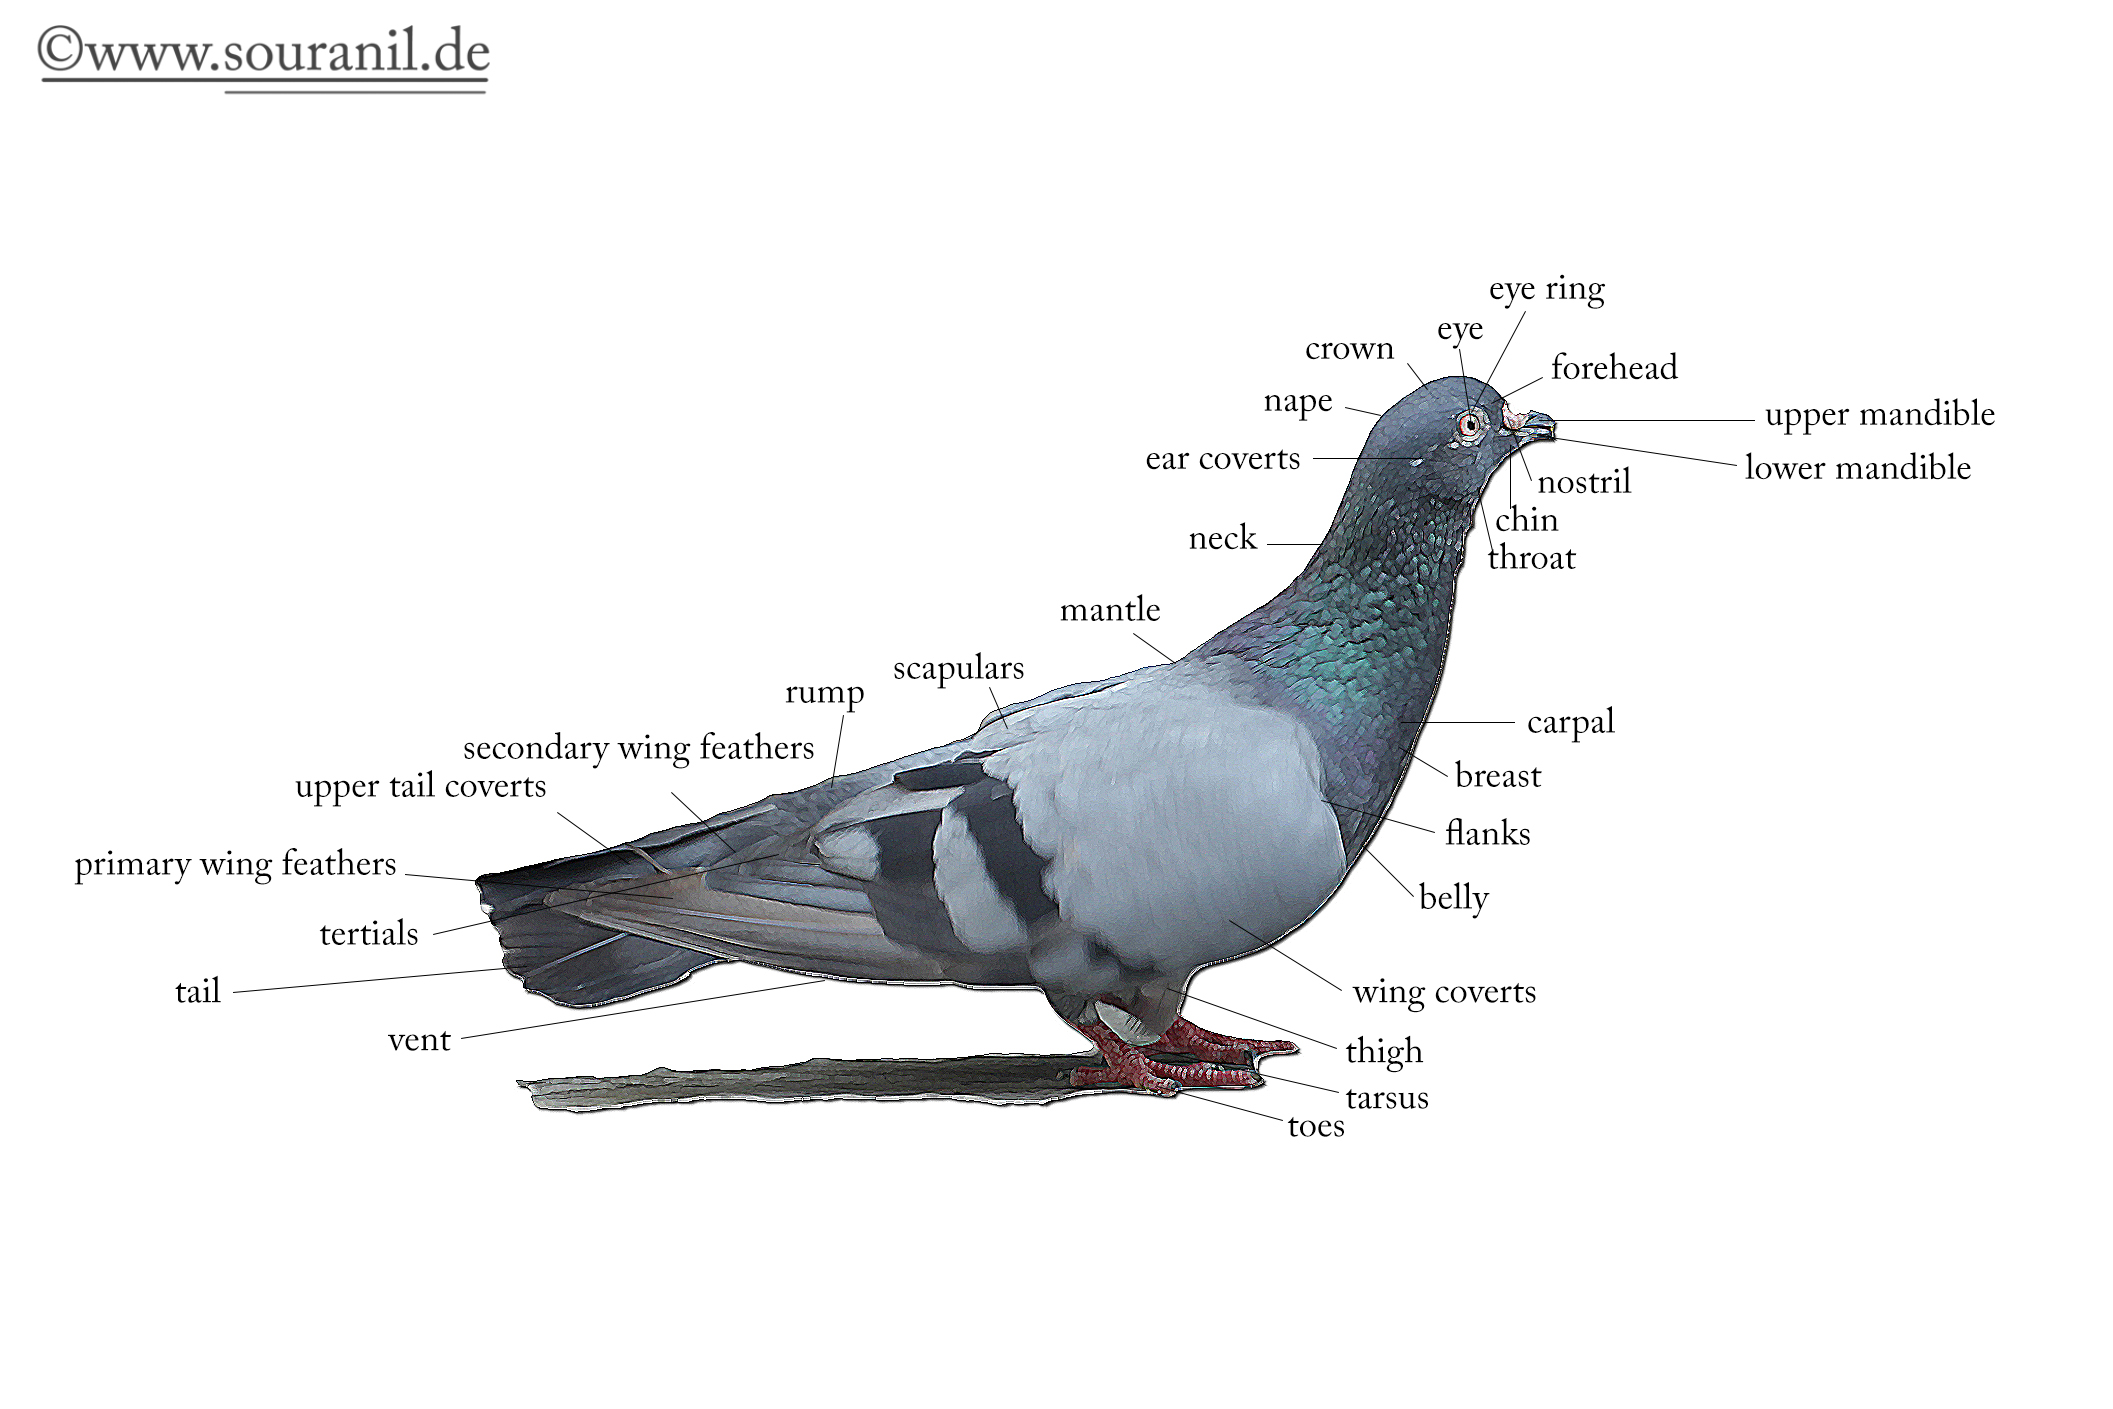 Pigeon Description